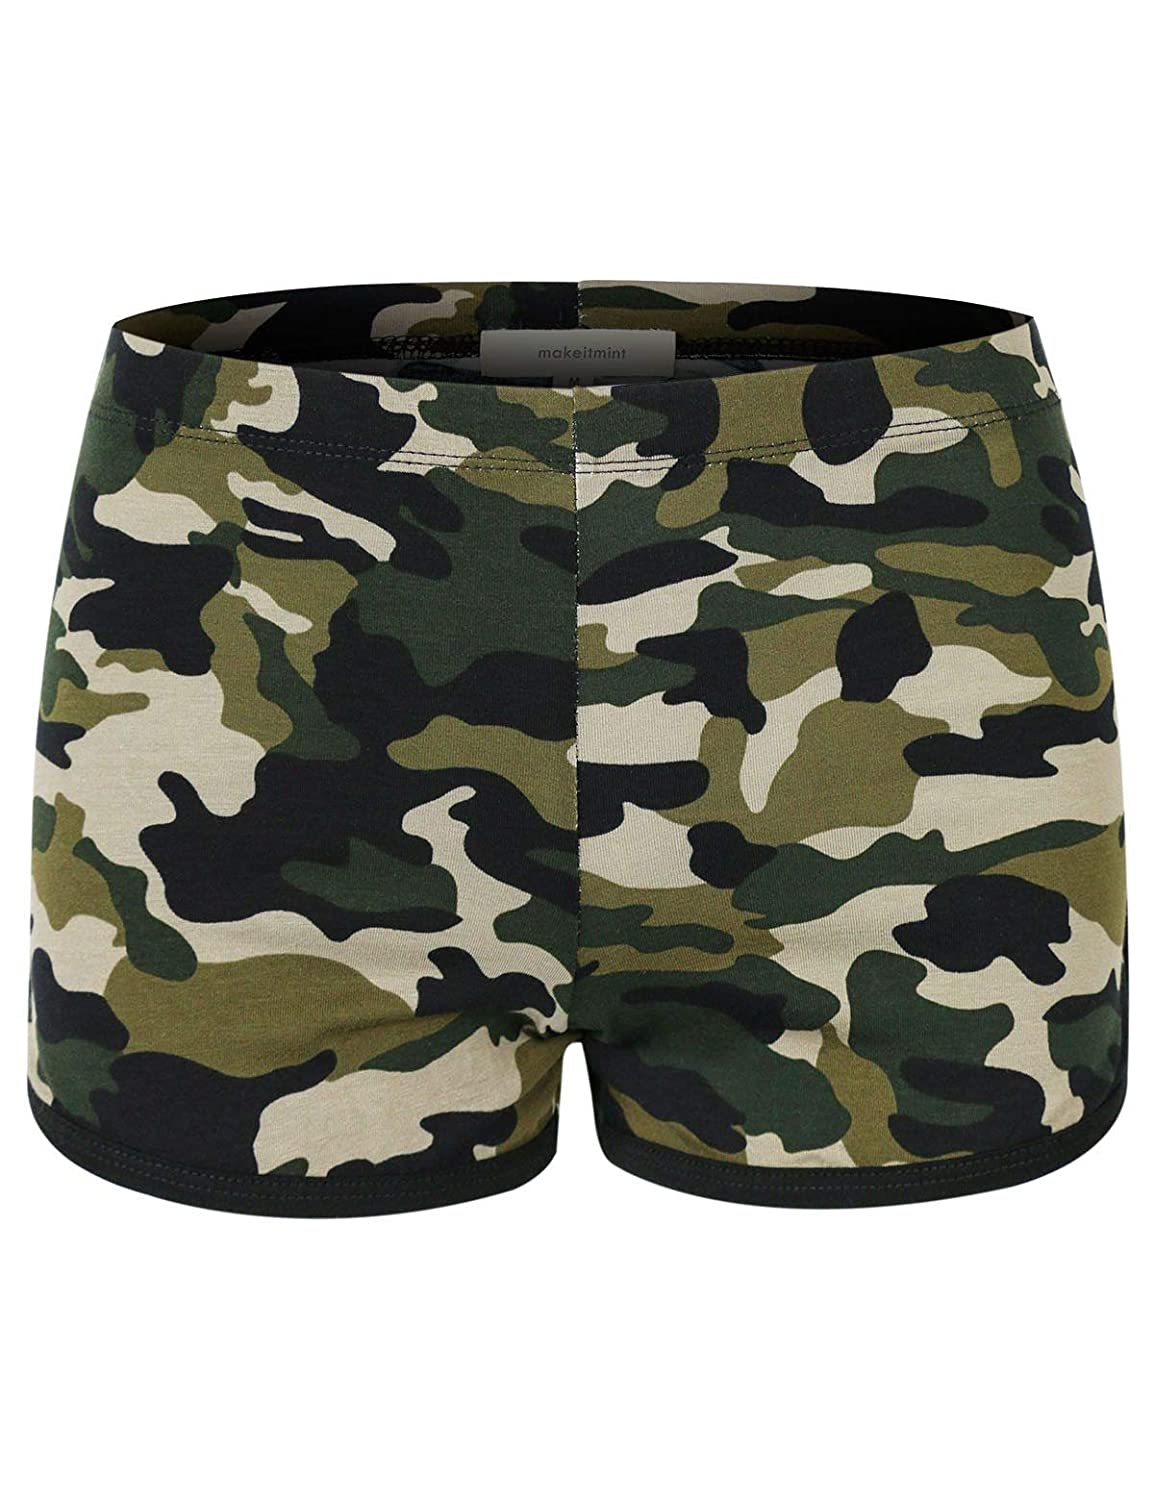 2e6420420a53a makeitmint Women's Comfy Camouflage Athletic Yoga Gym Training Workout  Shorts at Amazon Women's Clothing store: